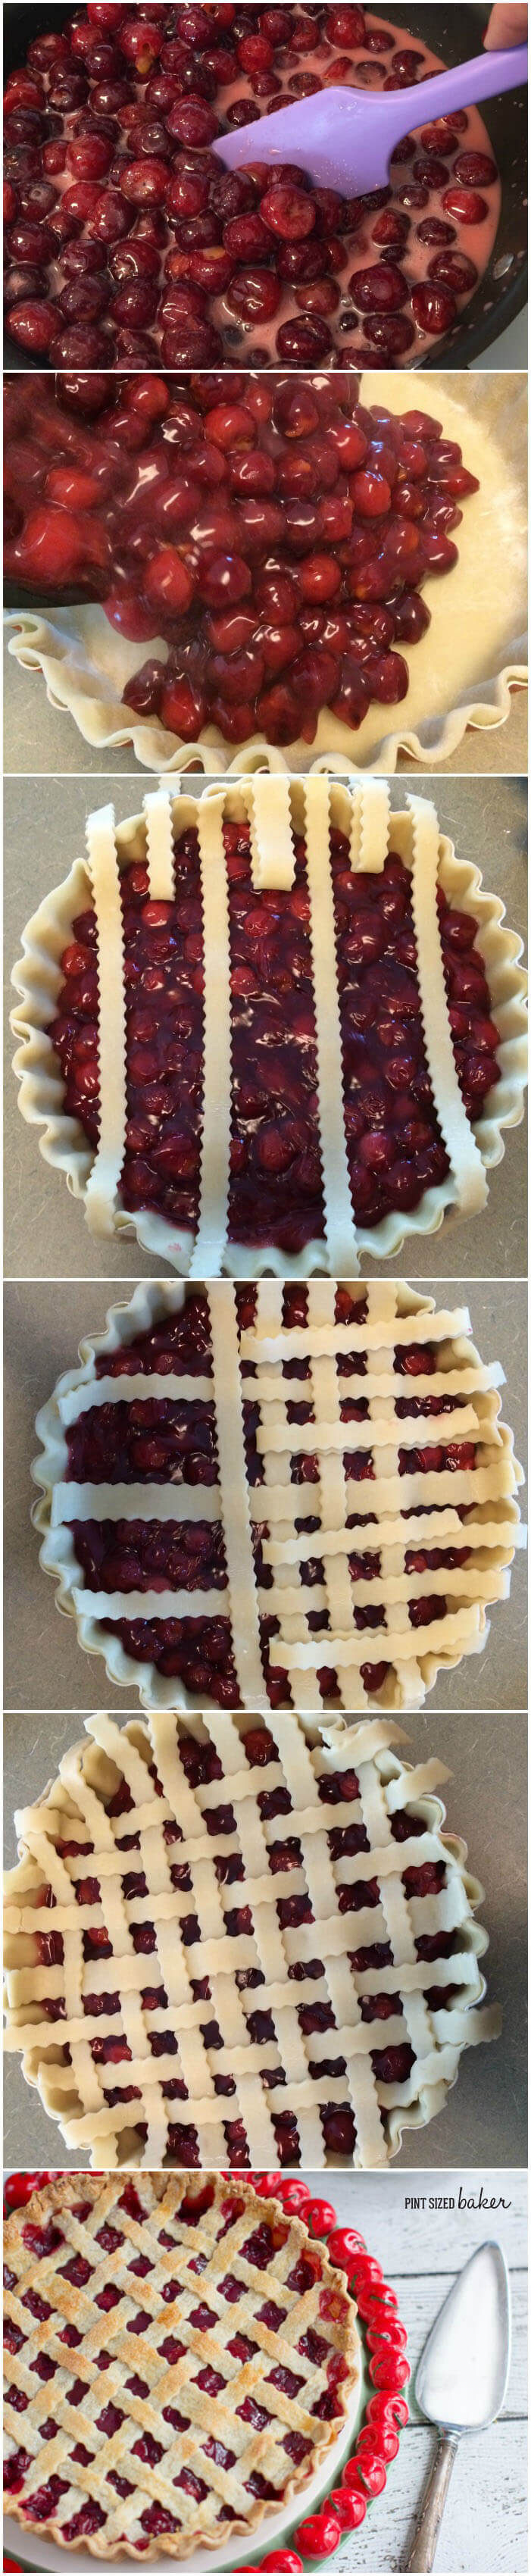 Baking a Deep Dish Cherry Pie is a piece of cake - I mean pie! Making the lattice top just makes this pie look amazing.